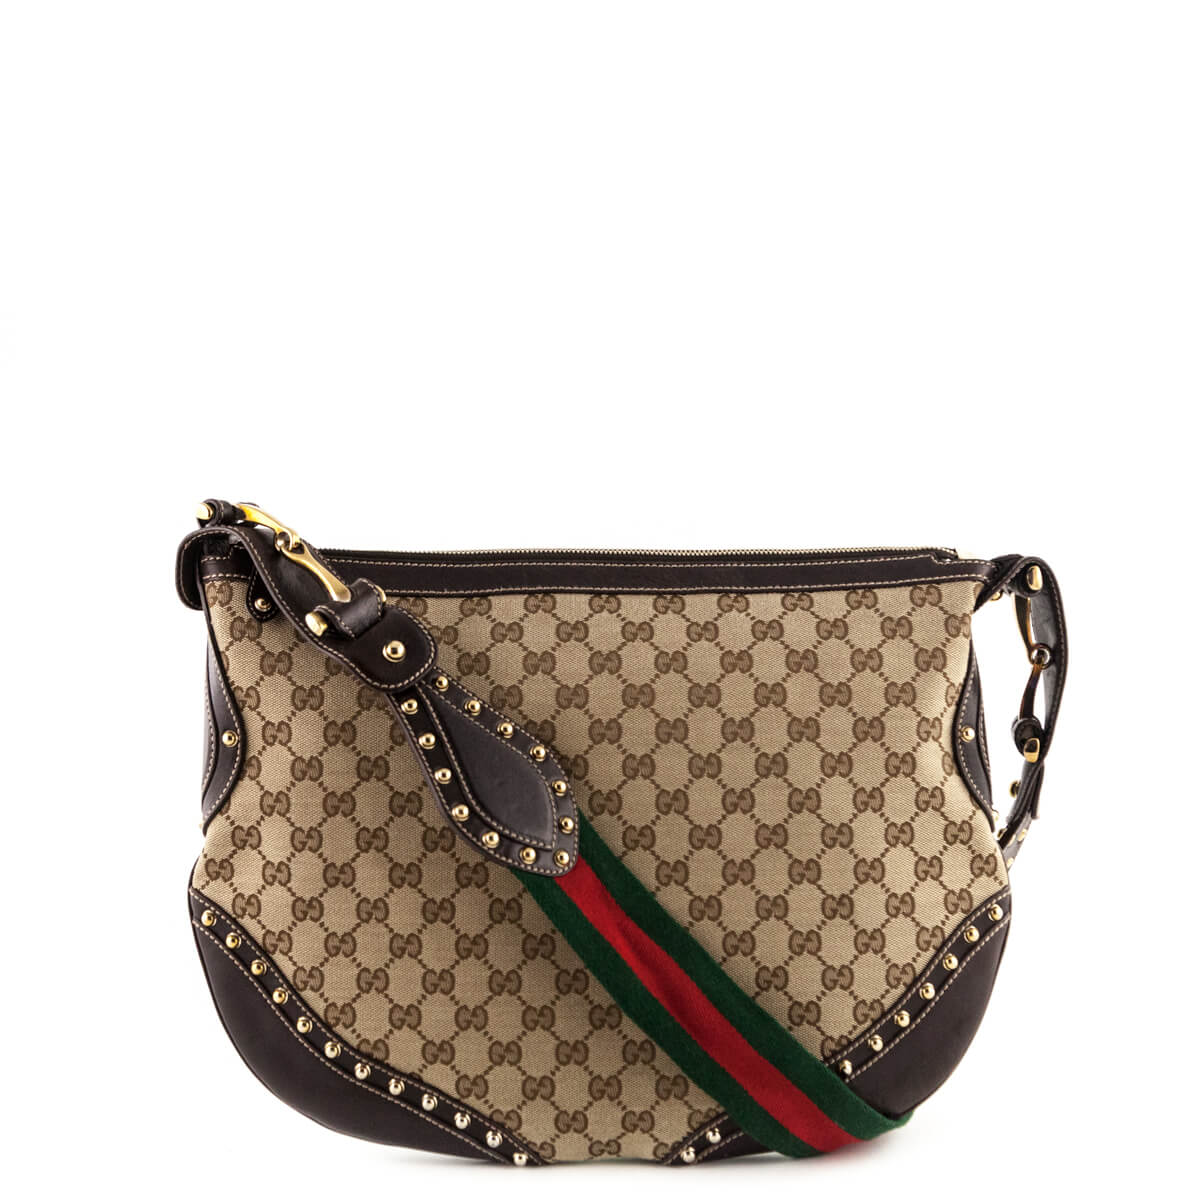 Gucci GG Canvas Pelham Studded Hobo Bag - LOVE that BAG - Preowned  Authentic Designer Handbags ... 5b789201b042b